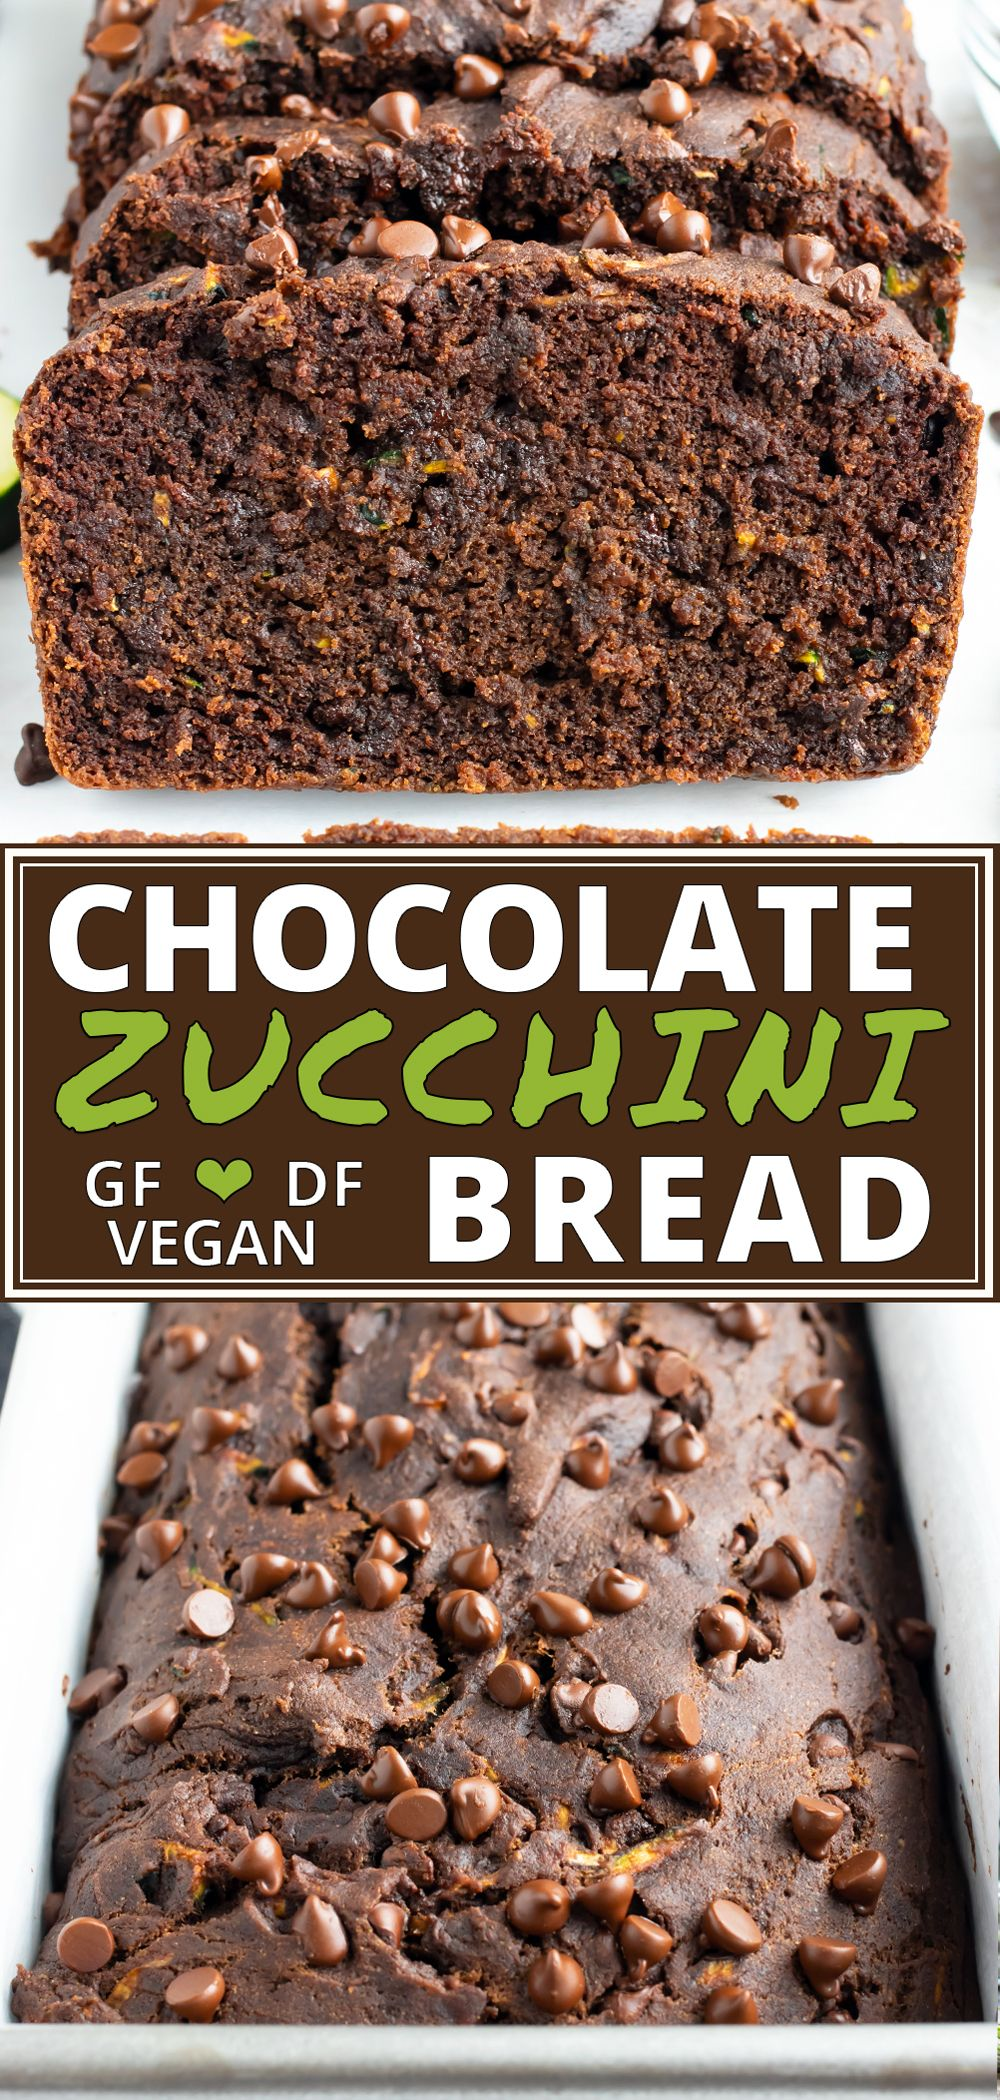 Photo of Double Chocolate Zucchini Bread